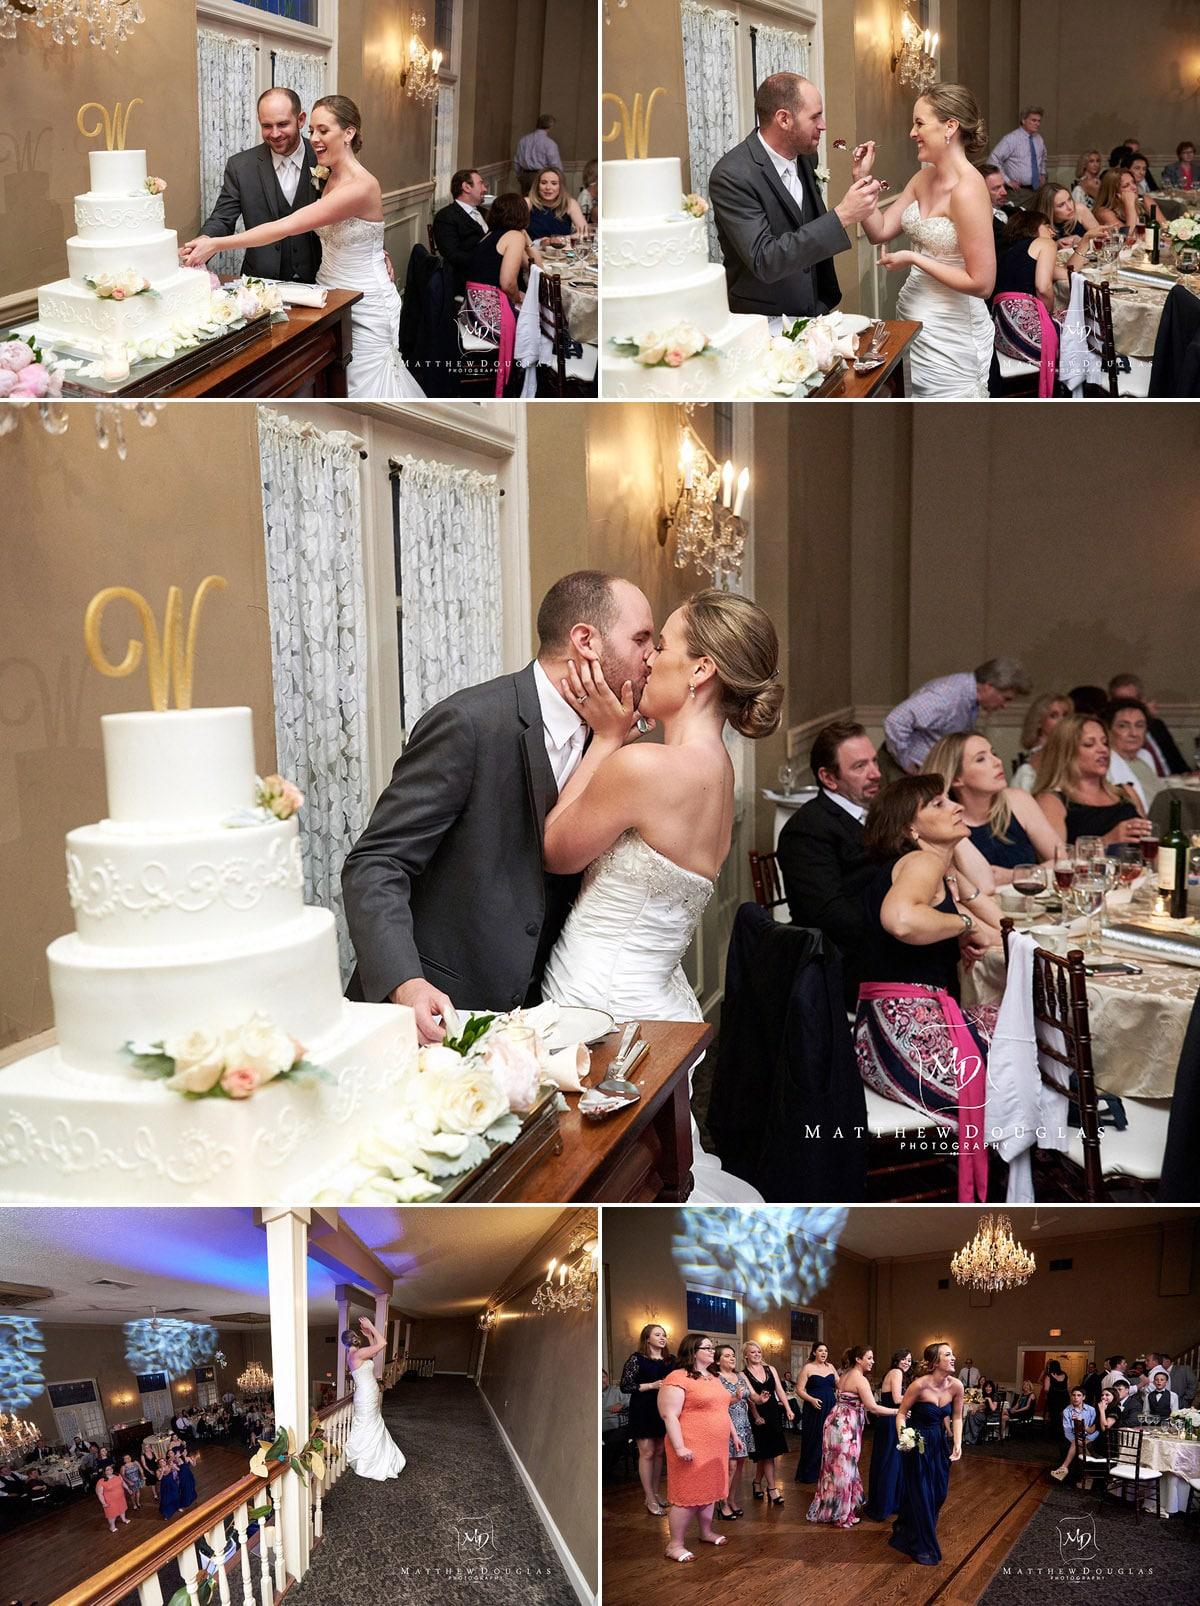 Davids Country Inn wedding photo